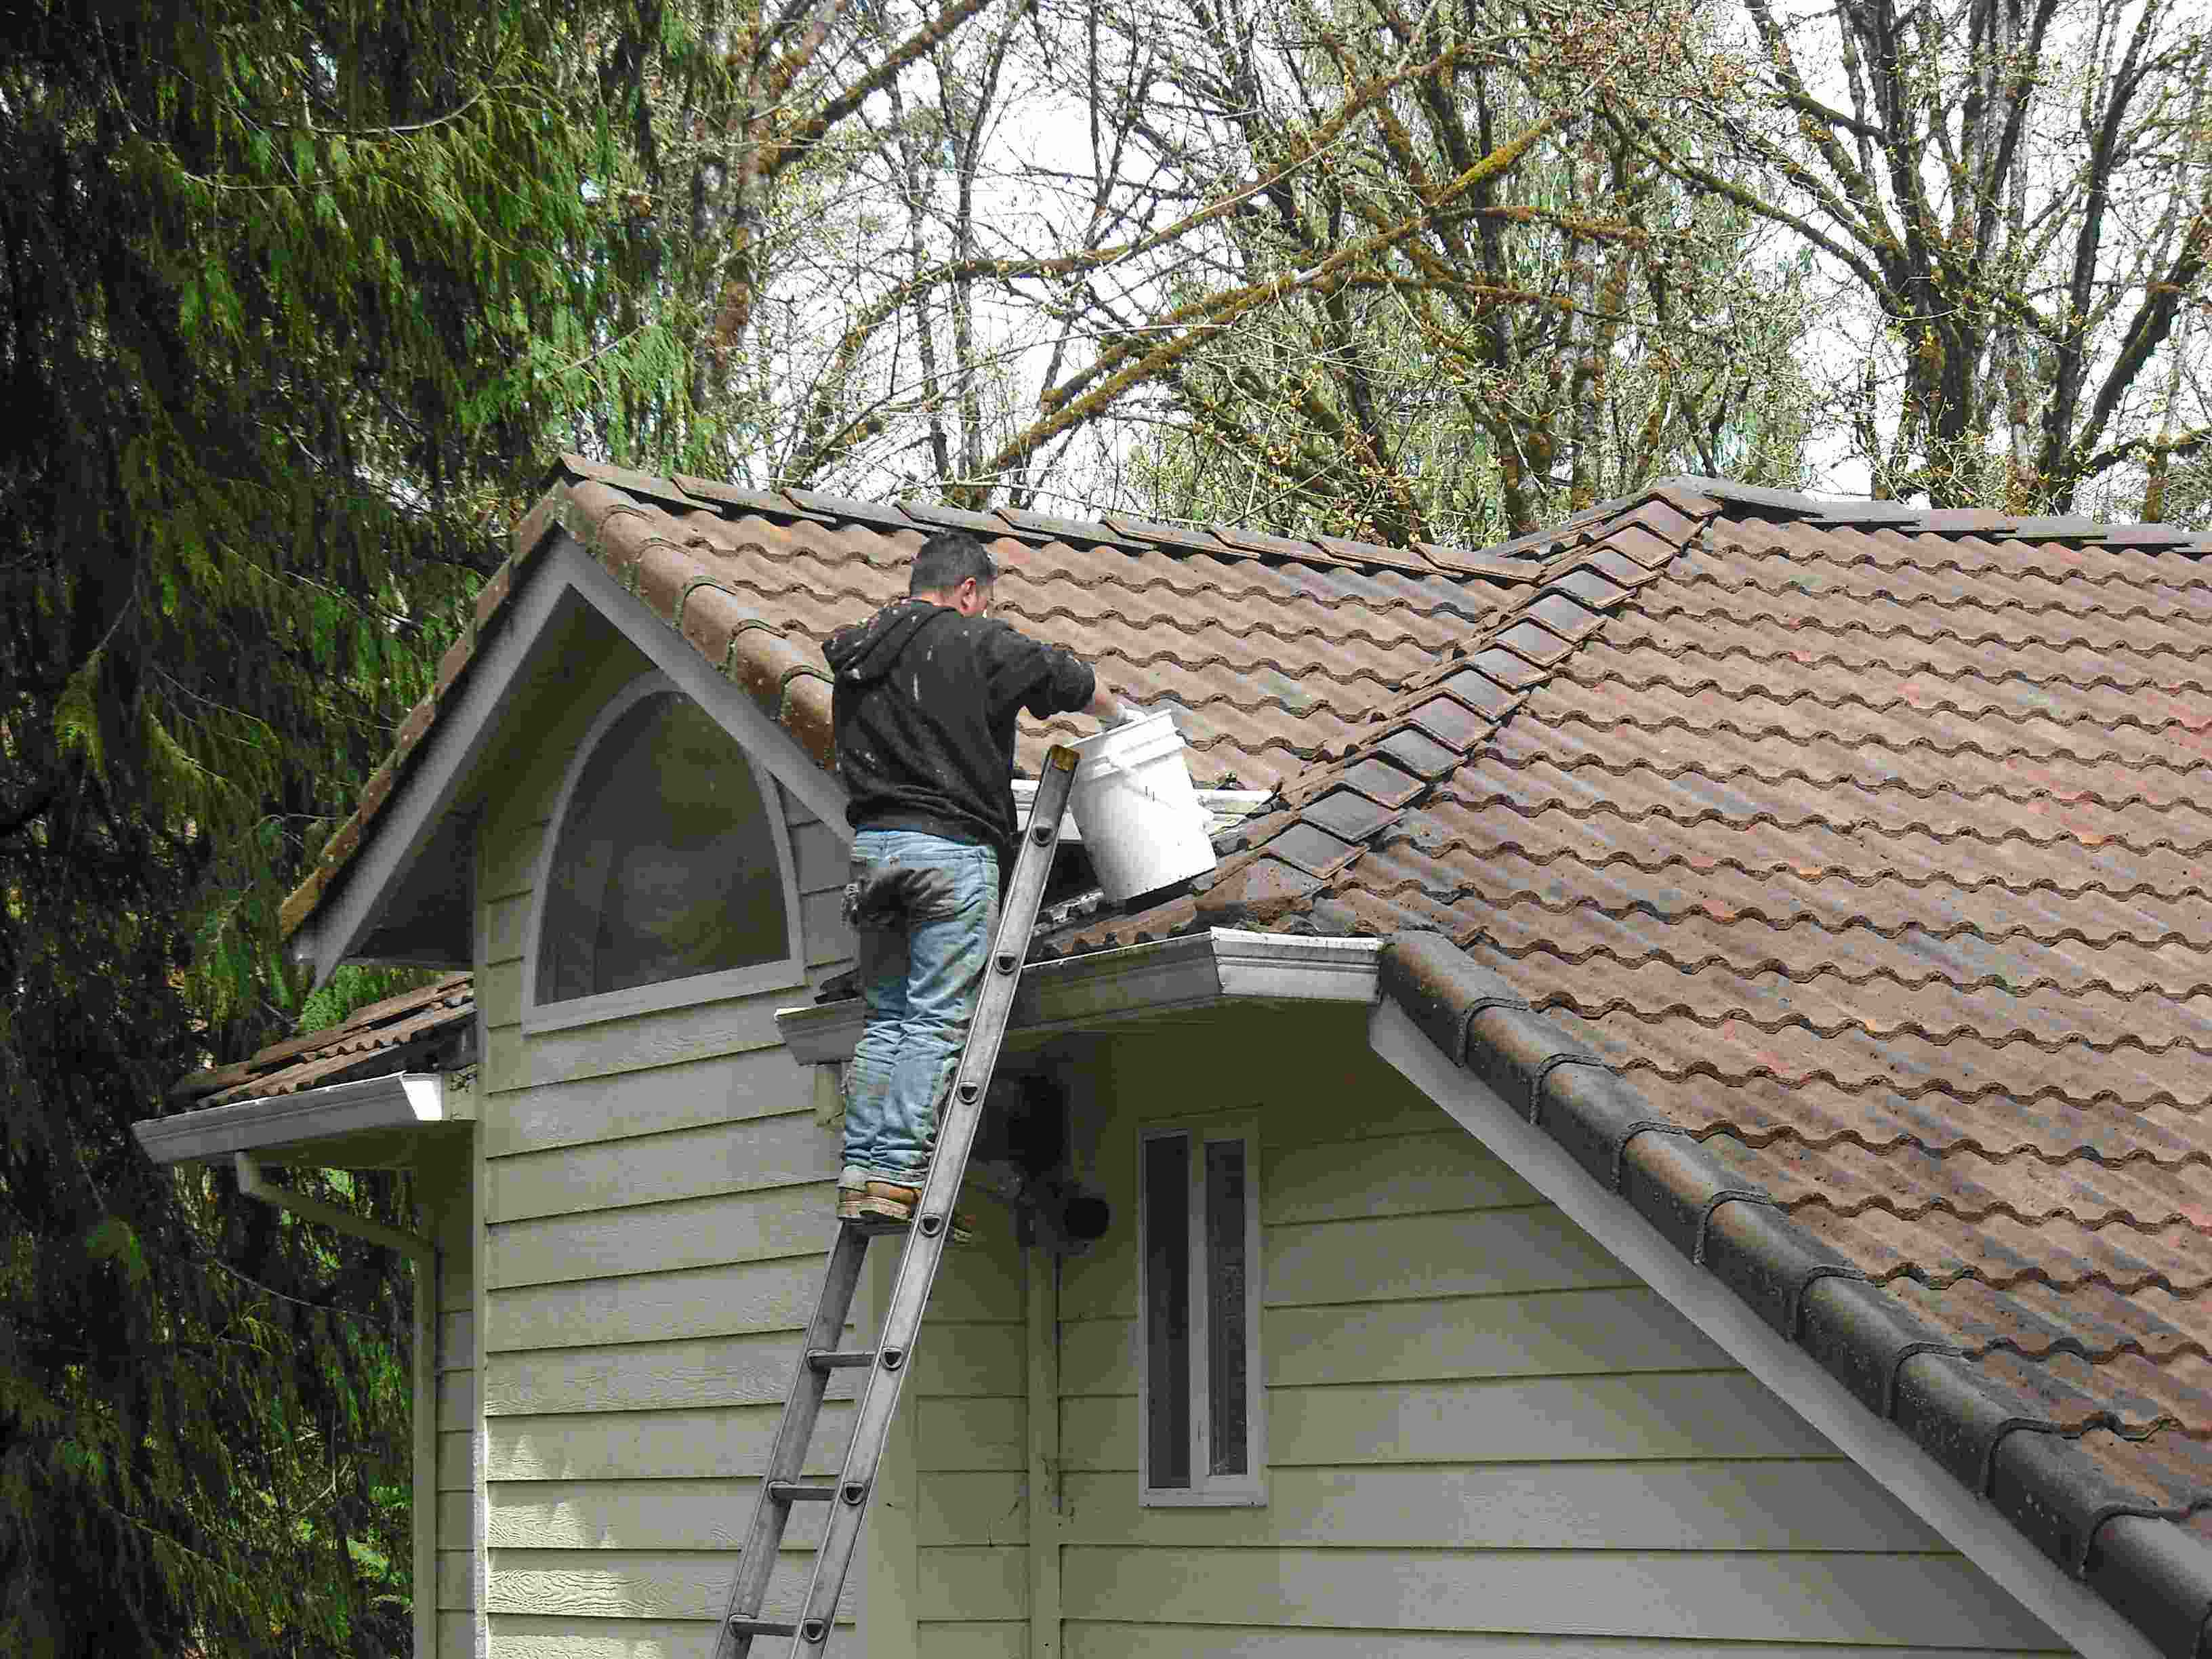 gutter cleaning in portland oregon - Roof Life Of Oregon